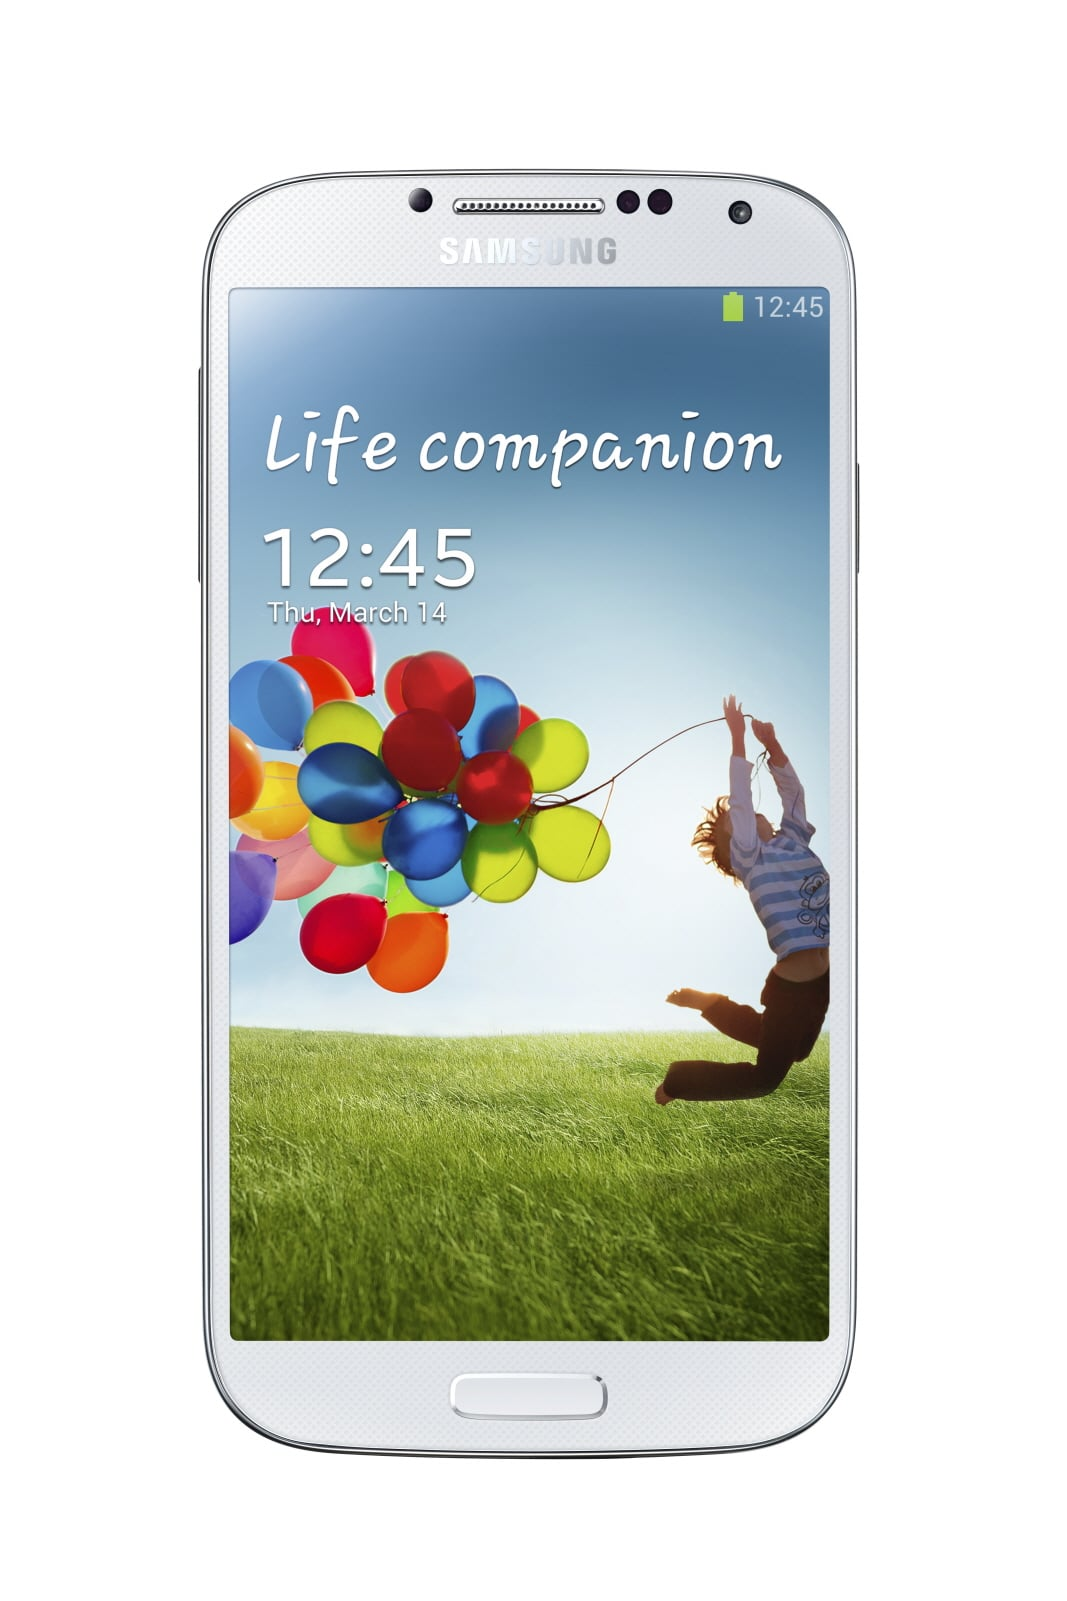 GALAXY S 4 Product Image 7